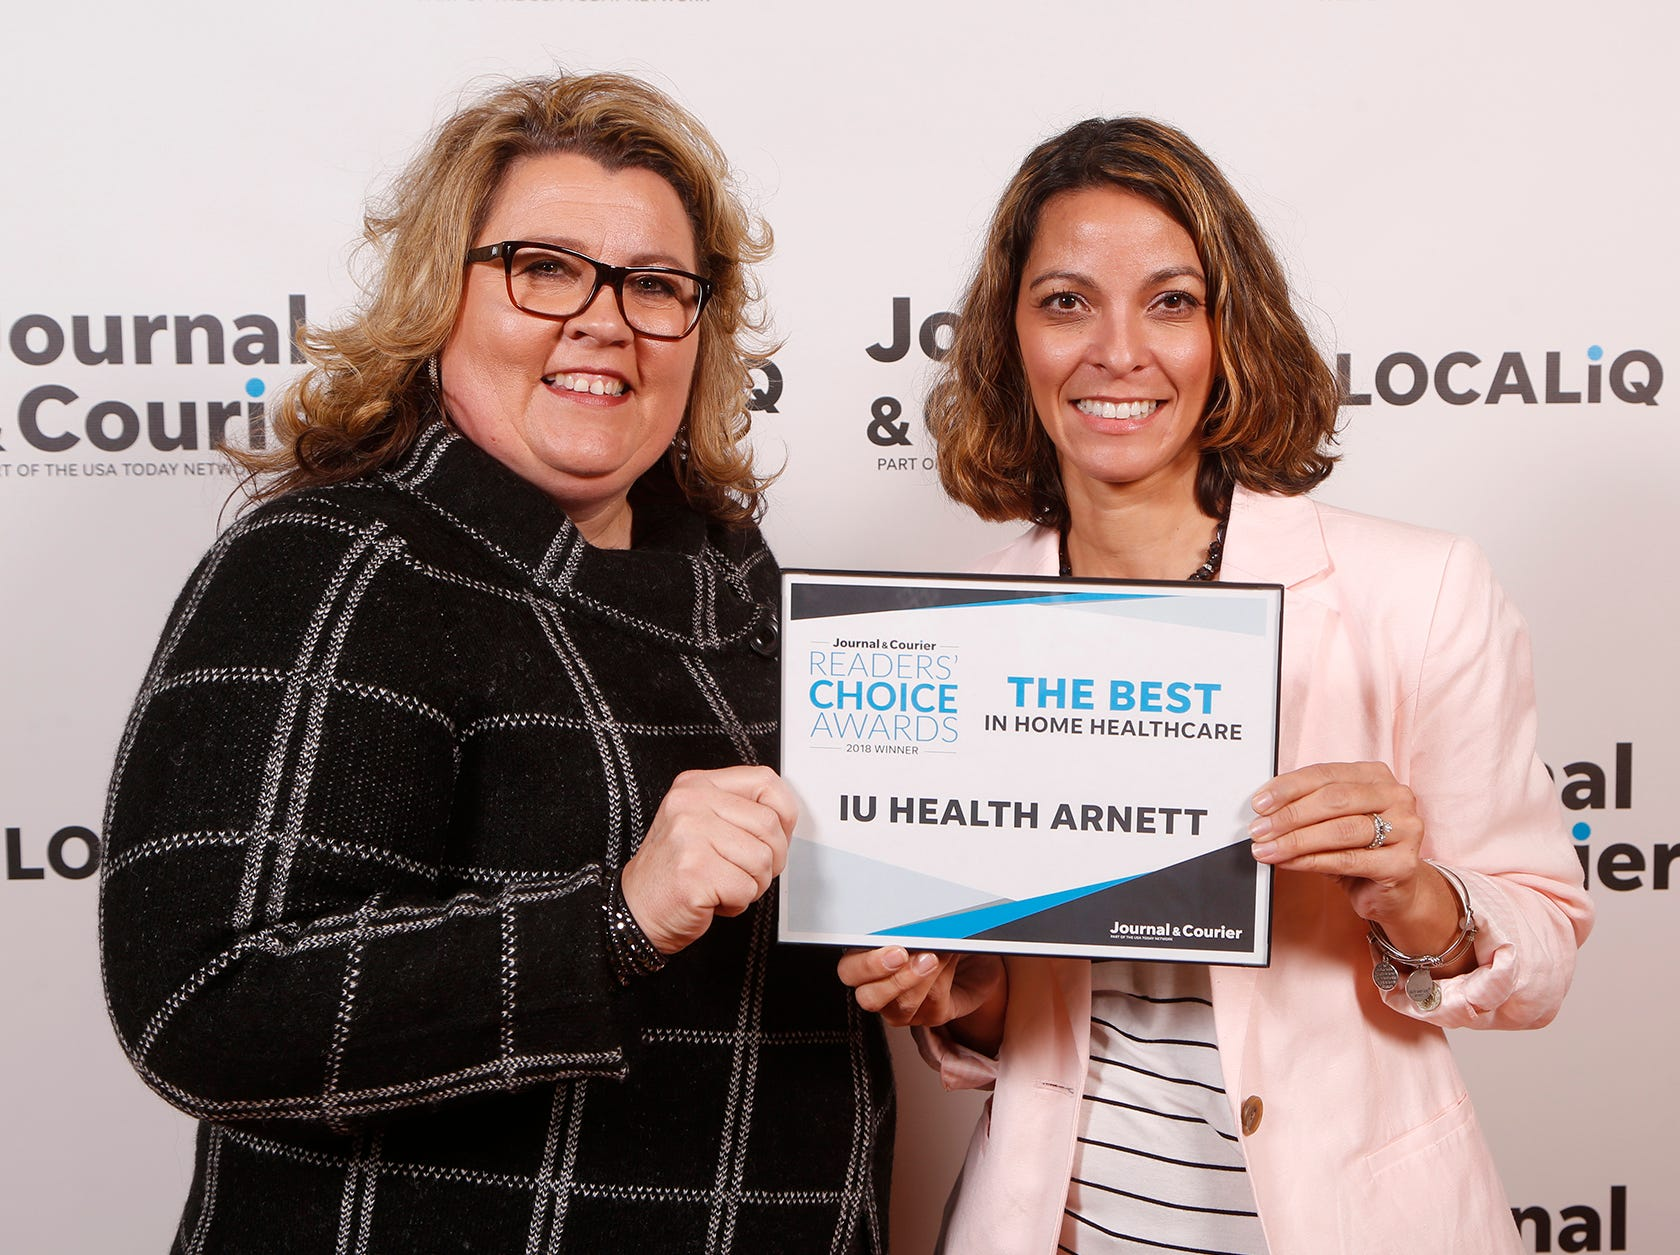 IU Health Arnett, Journal & Courier Readers' Choice Awards winner for the best in home healthcare.